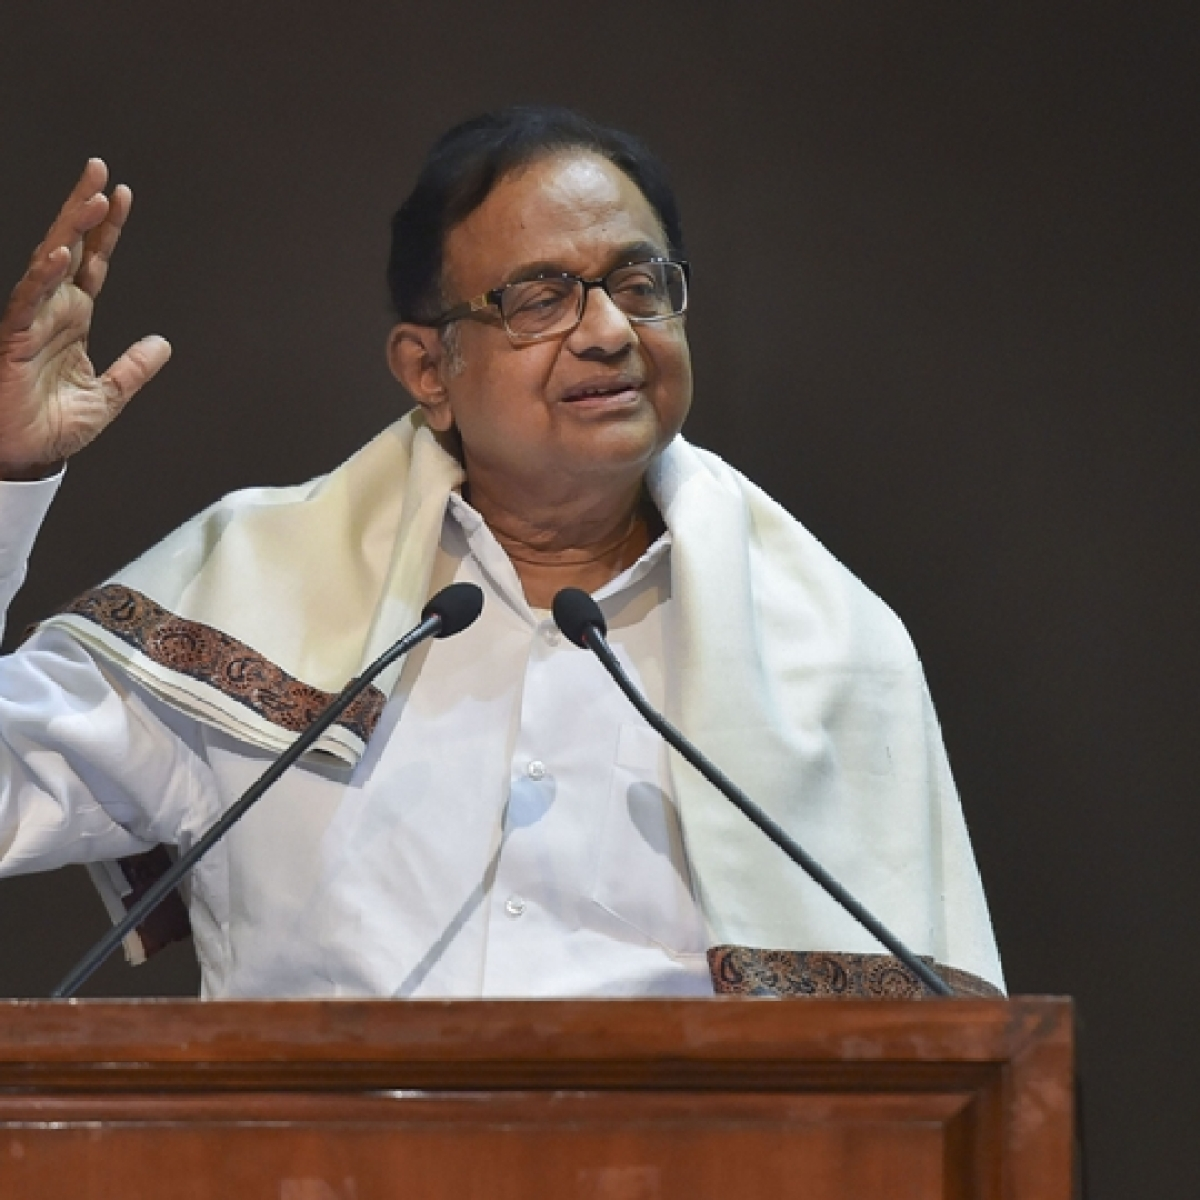 Chidambaram slams govt for invoking PSA against former J&K CM Mehbooba Mufti and Omar Abdullah